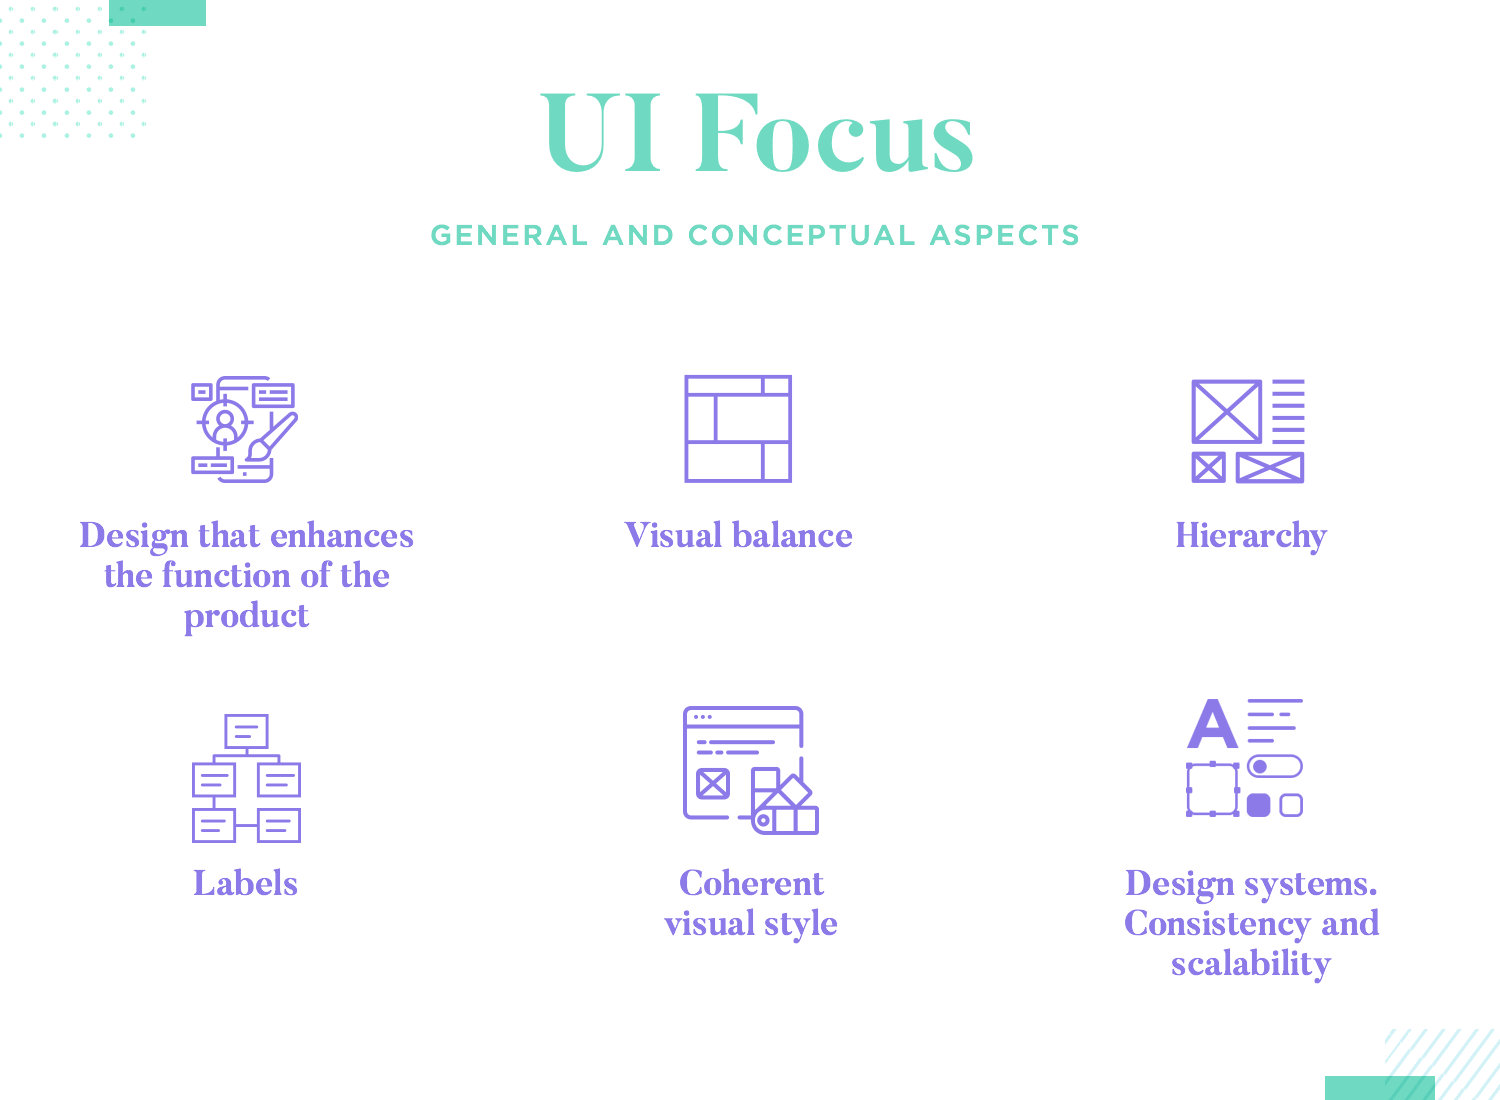 list of tangible factors that UI design focuses on